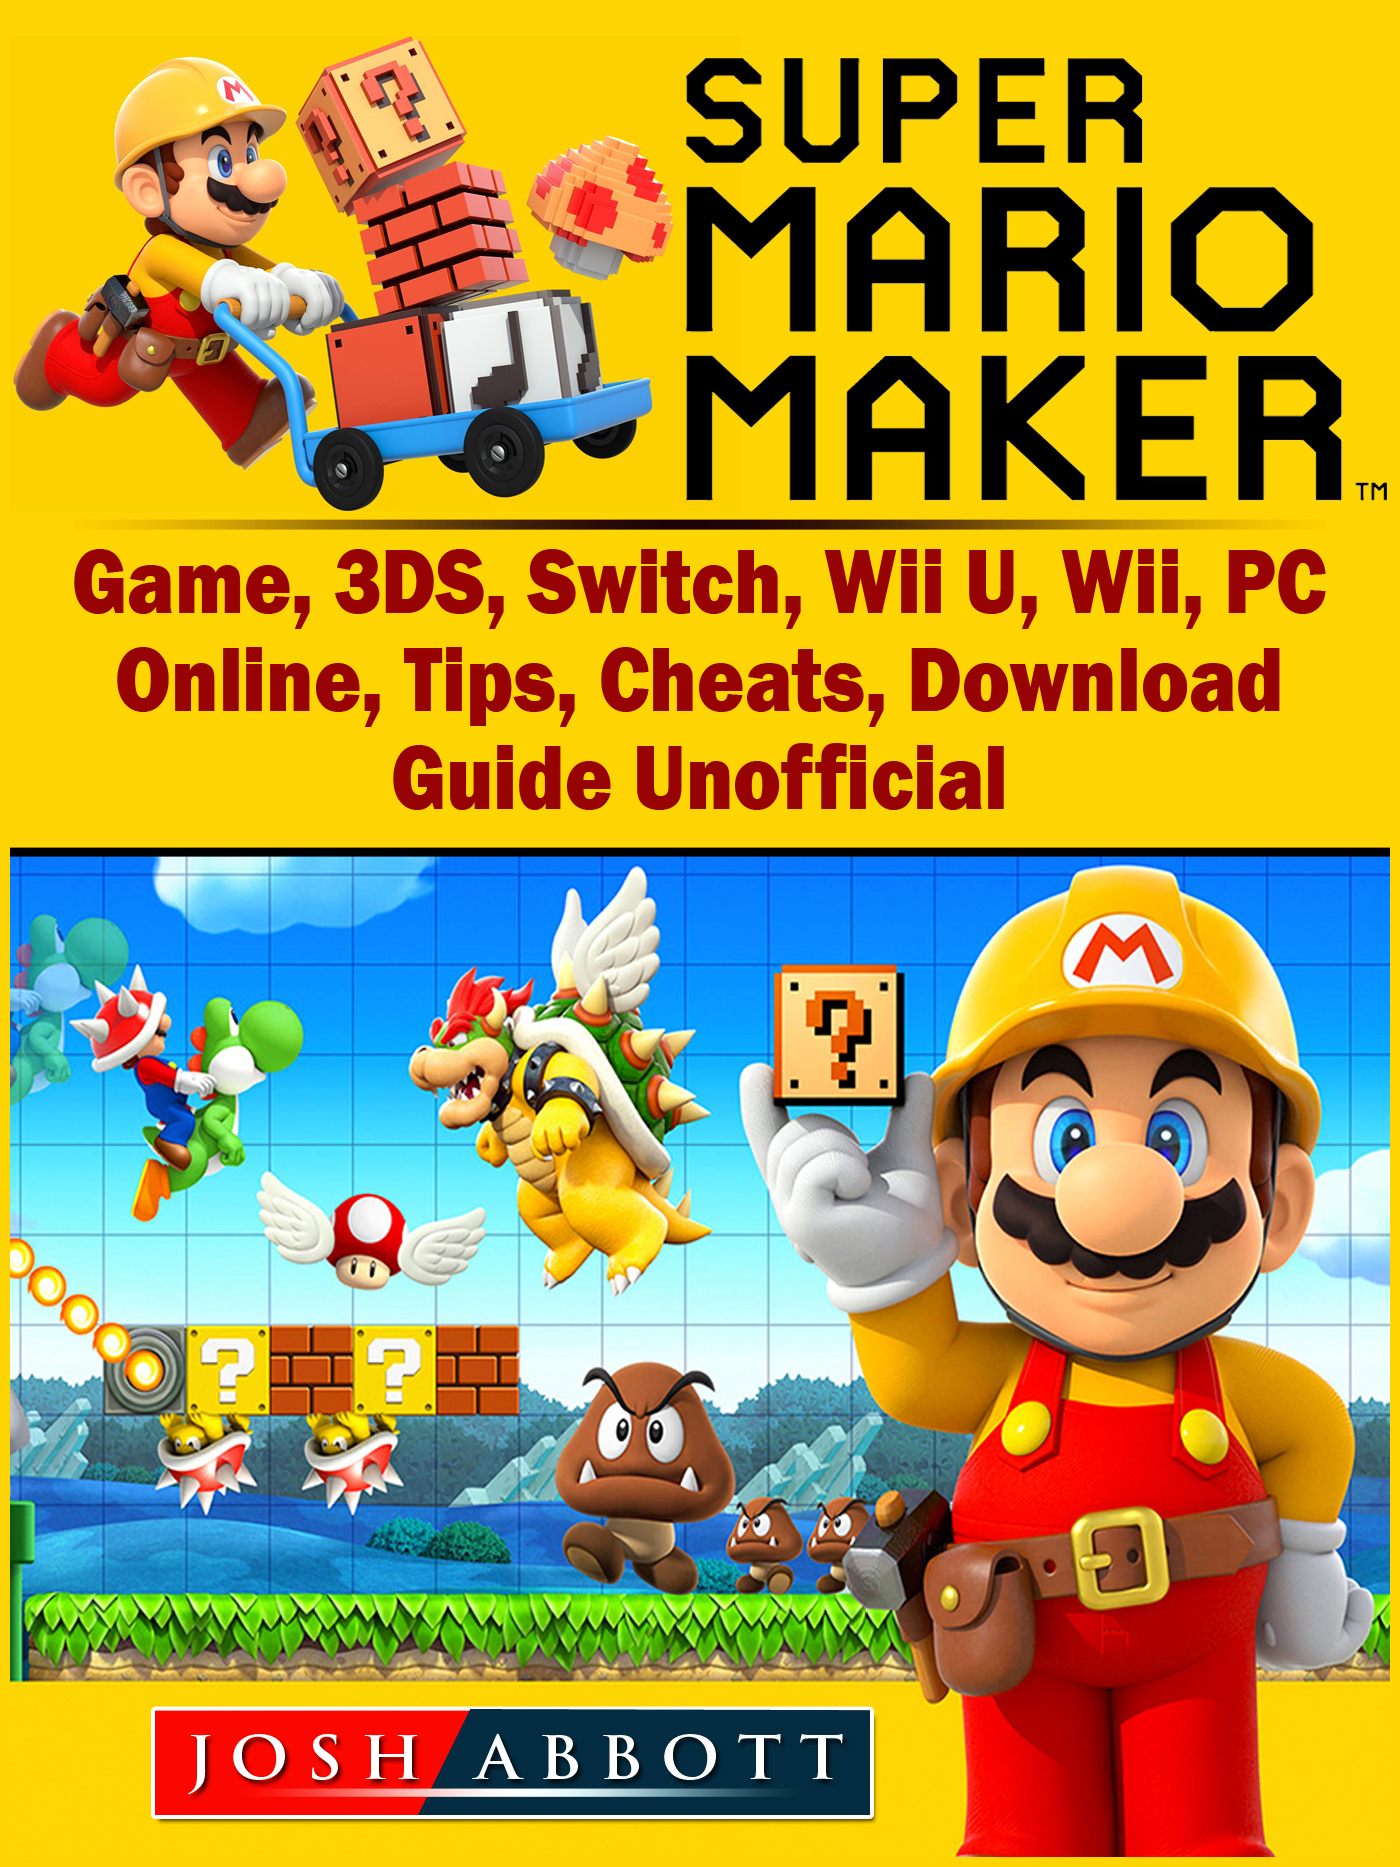 Download free cheat creator software! Make your own game hacks!